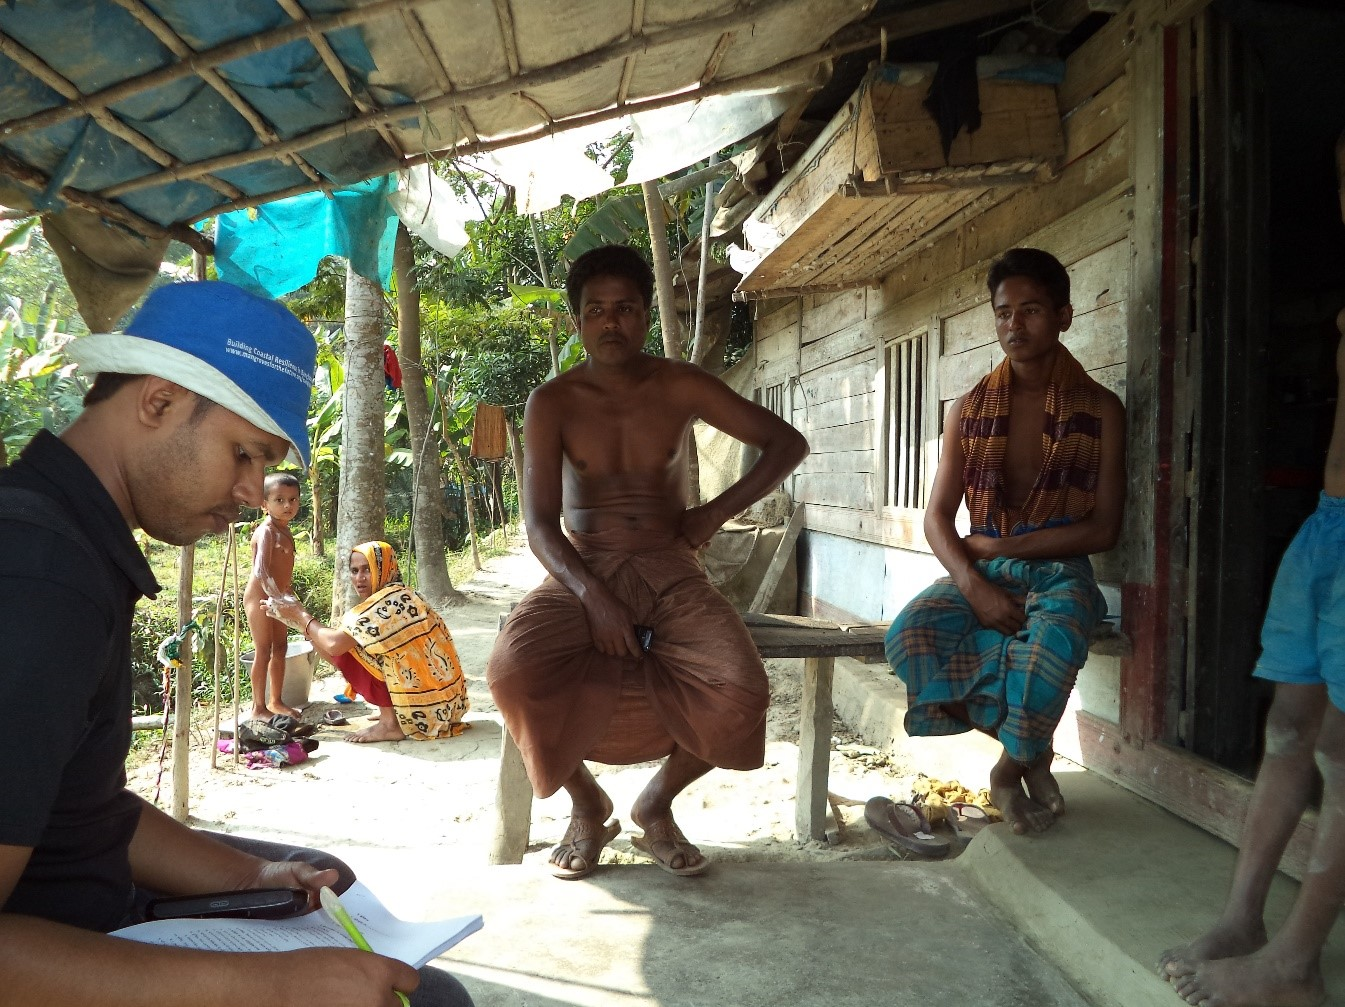 The CREL/JDR 3RD Mangrove Valuation team interviews residents of Sharankhola county, Khulna District, to understand how they use Sundarbans mangrove resources as part of their livelihoods